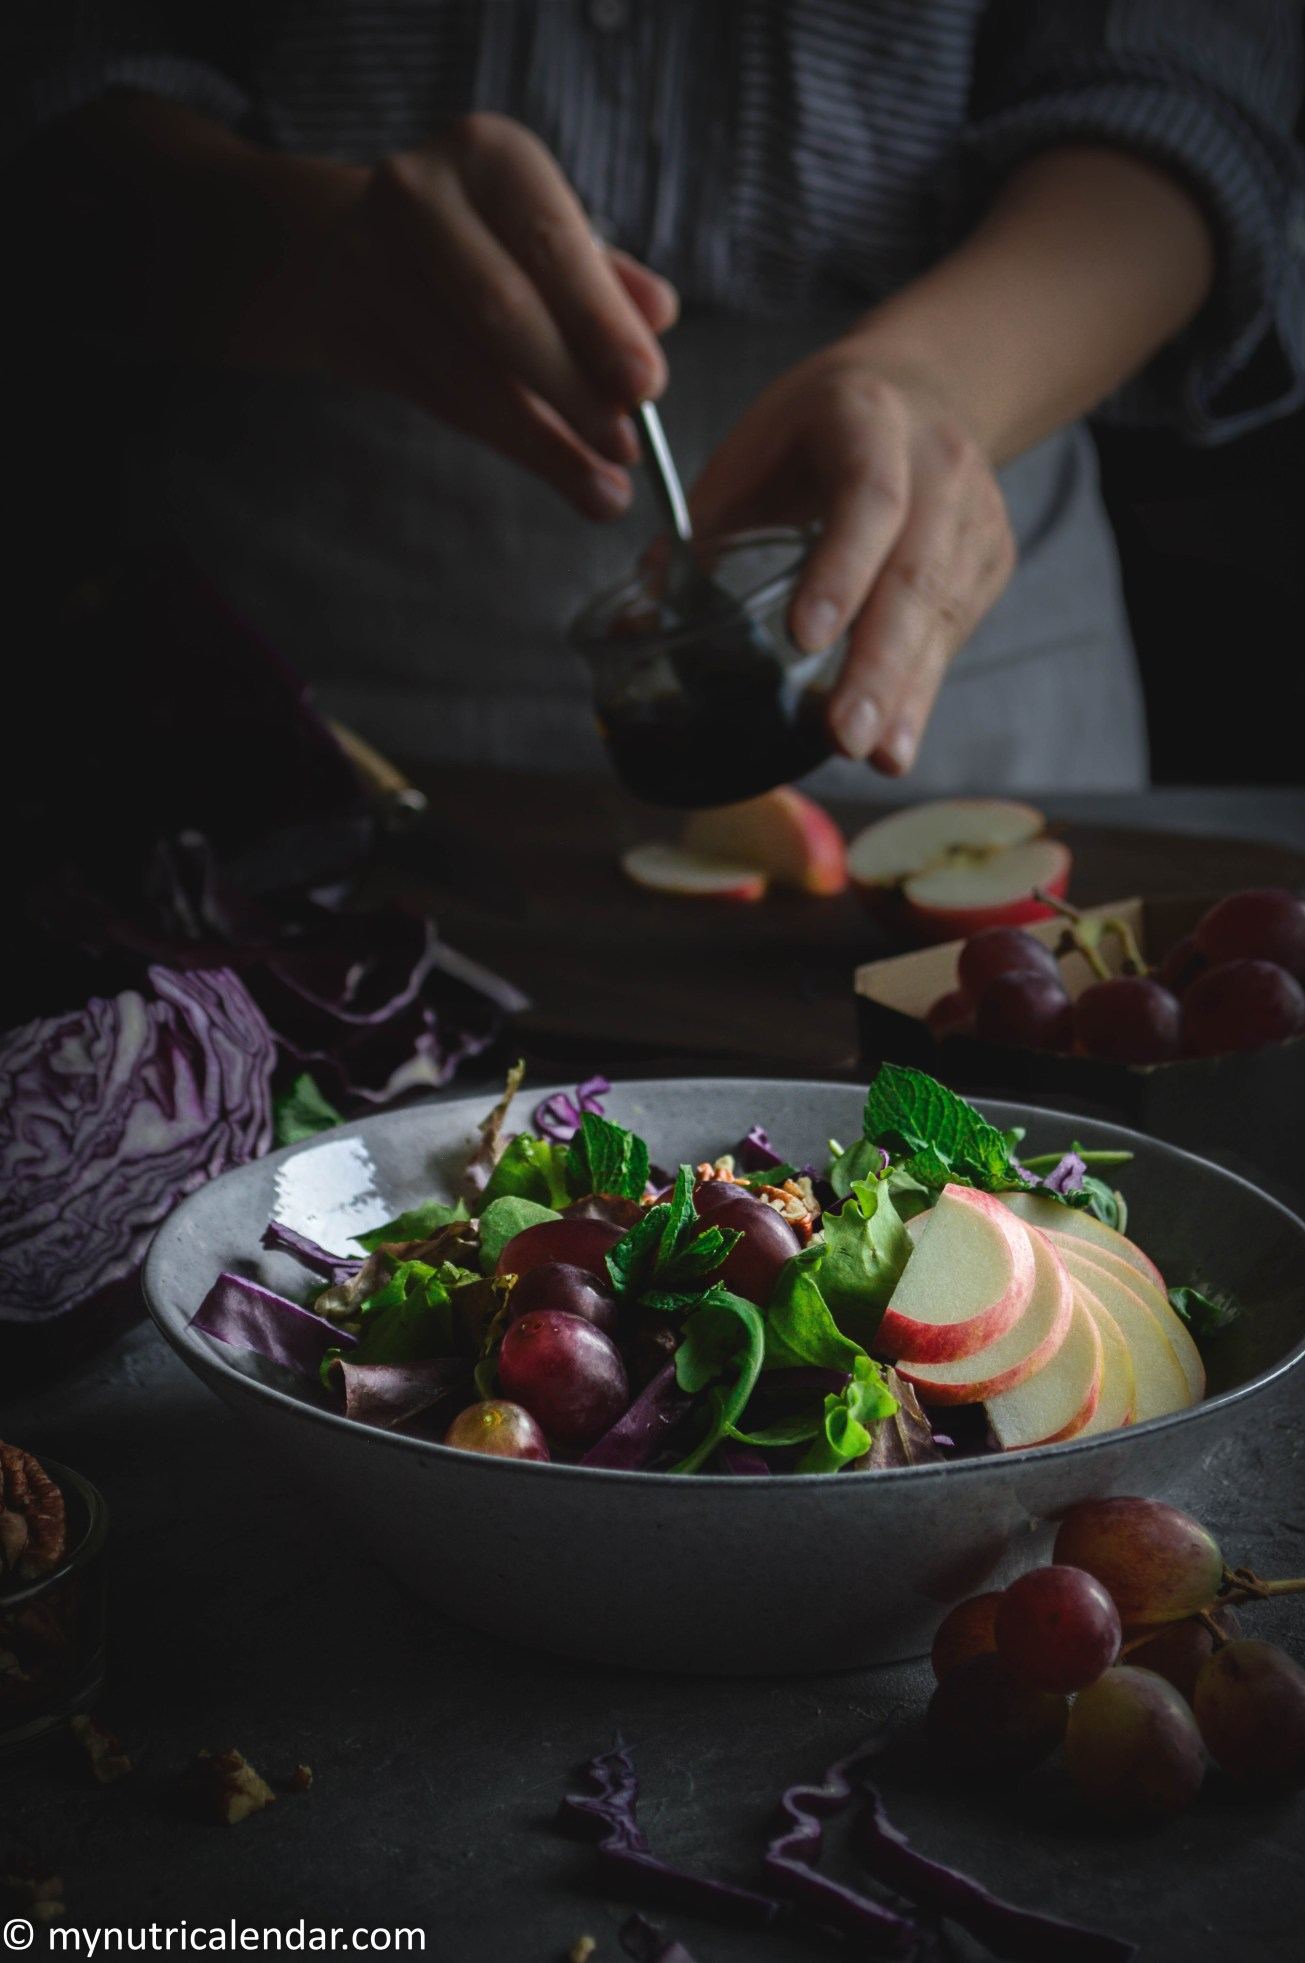 red-cabbage-grapes-apple-mint-salad-seasonal-vegetables-autumn-produce-food-photography-moody-story-telling-3